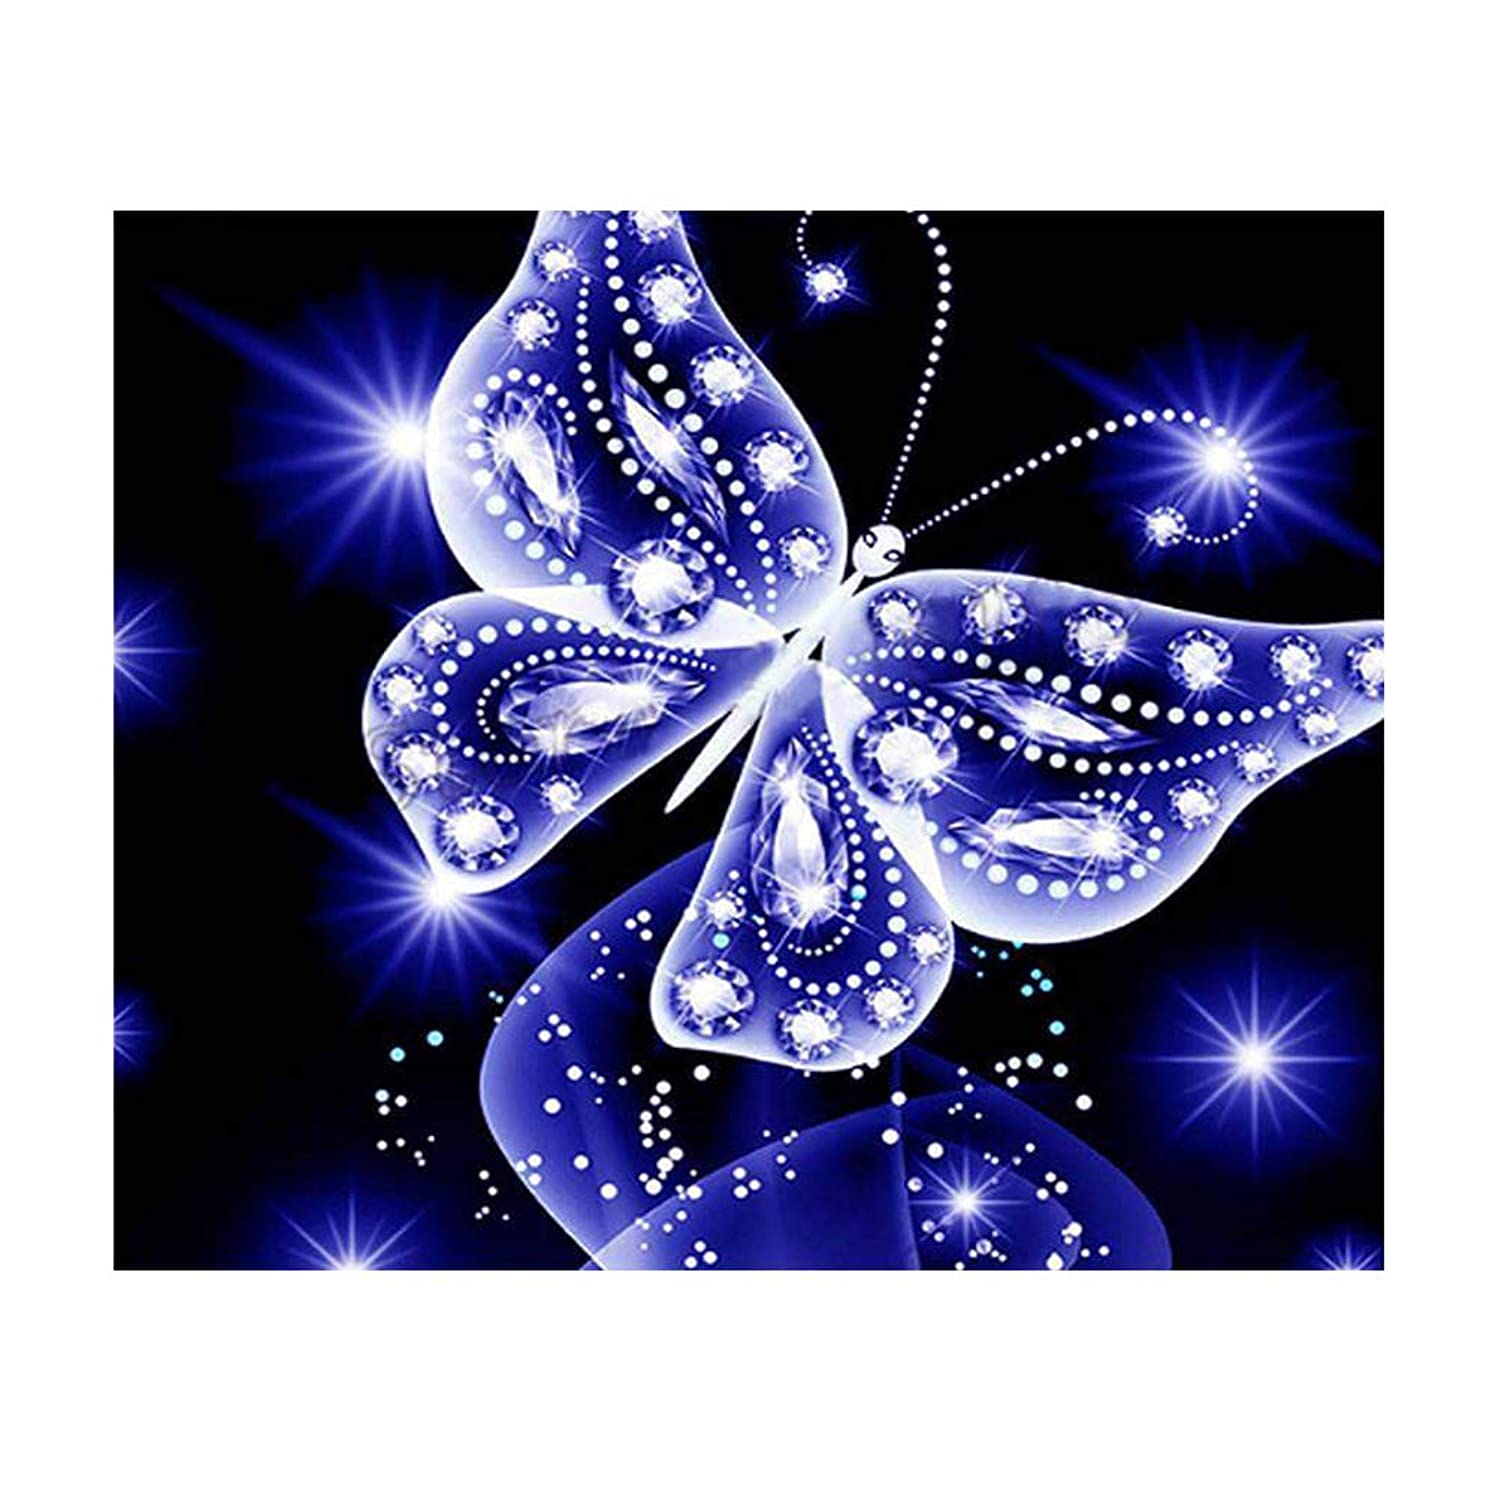 DIY 5D Diamond Painting by Number Kits, Crystal Rhinestone Full Diamond Embroidery Pictures Arts Craft for Home Wall Decor (Pattern A)